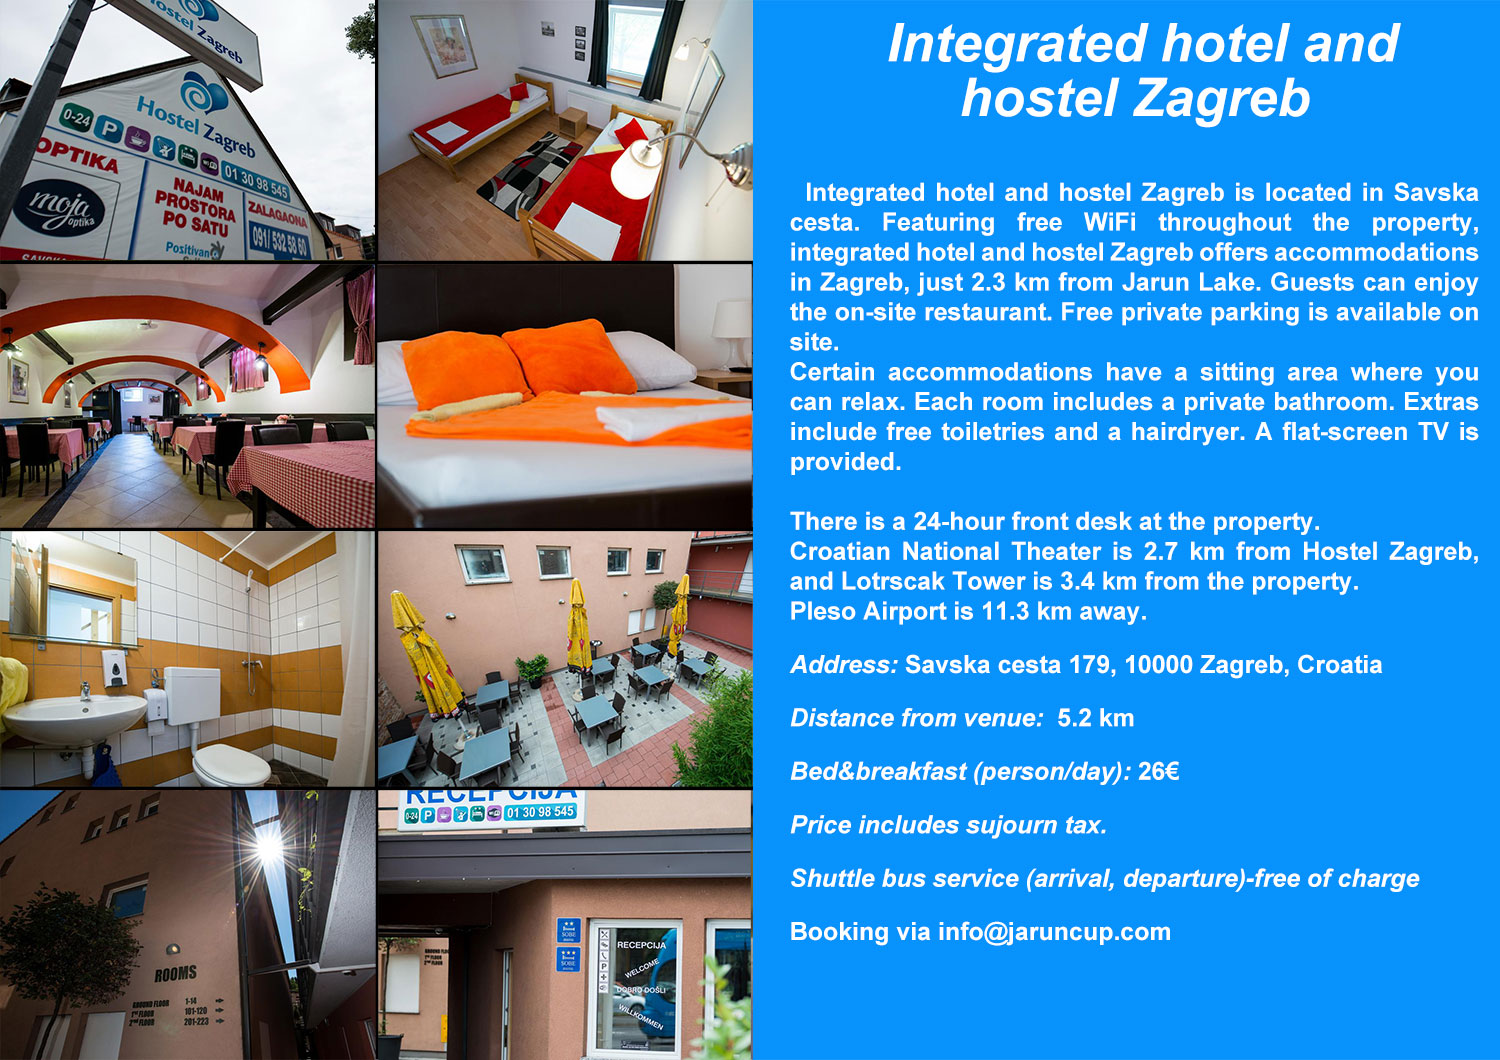 Hotel and hostel Zagreb web